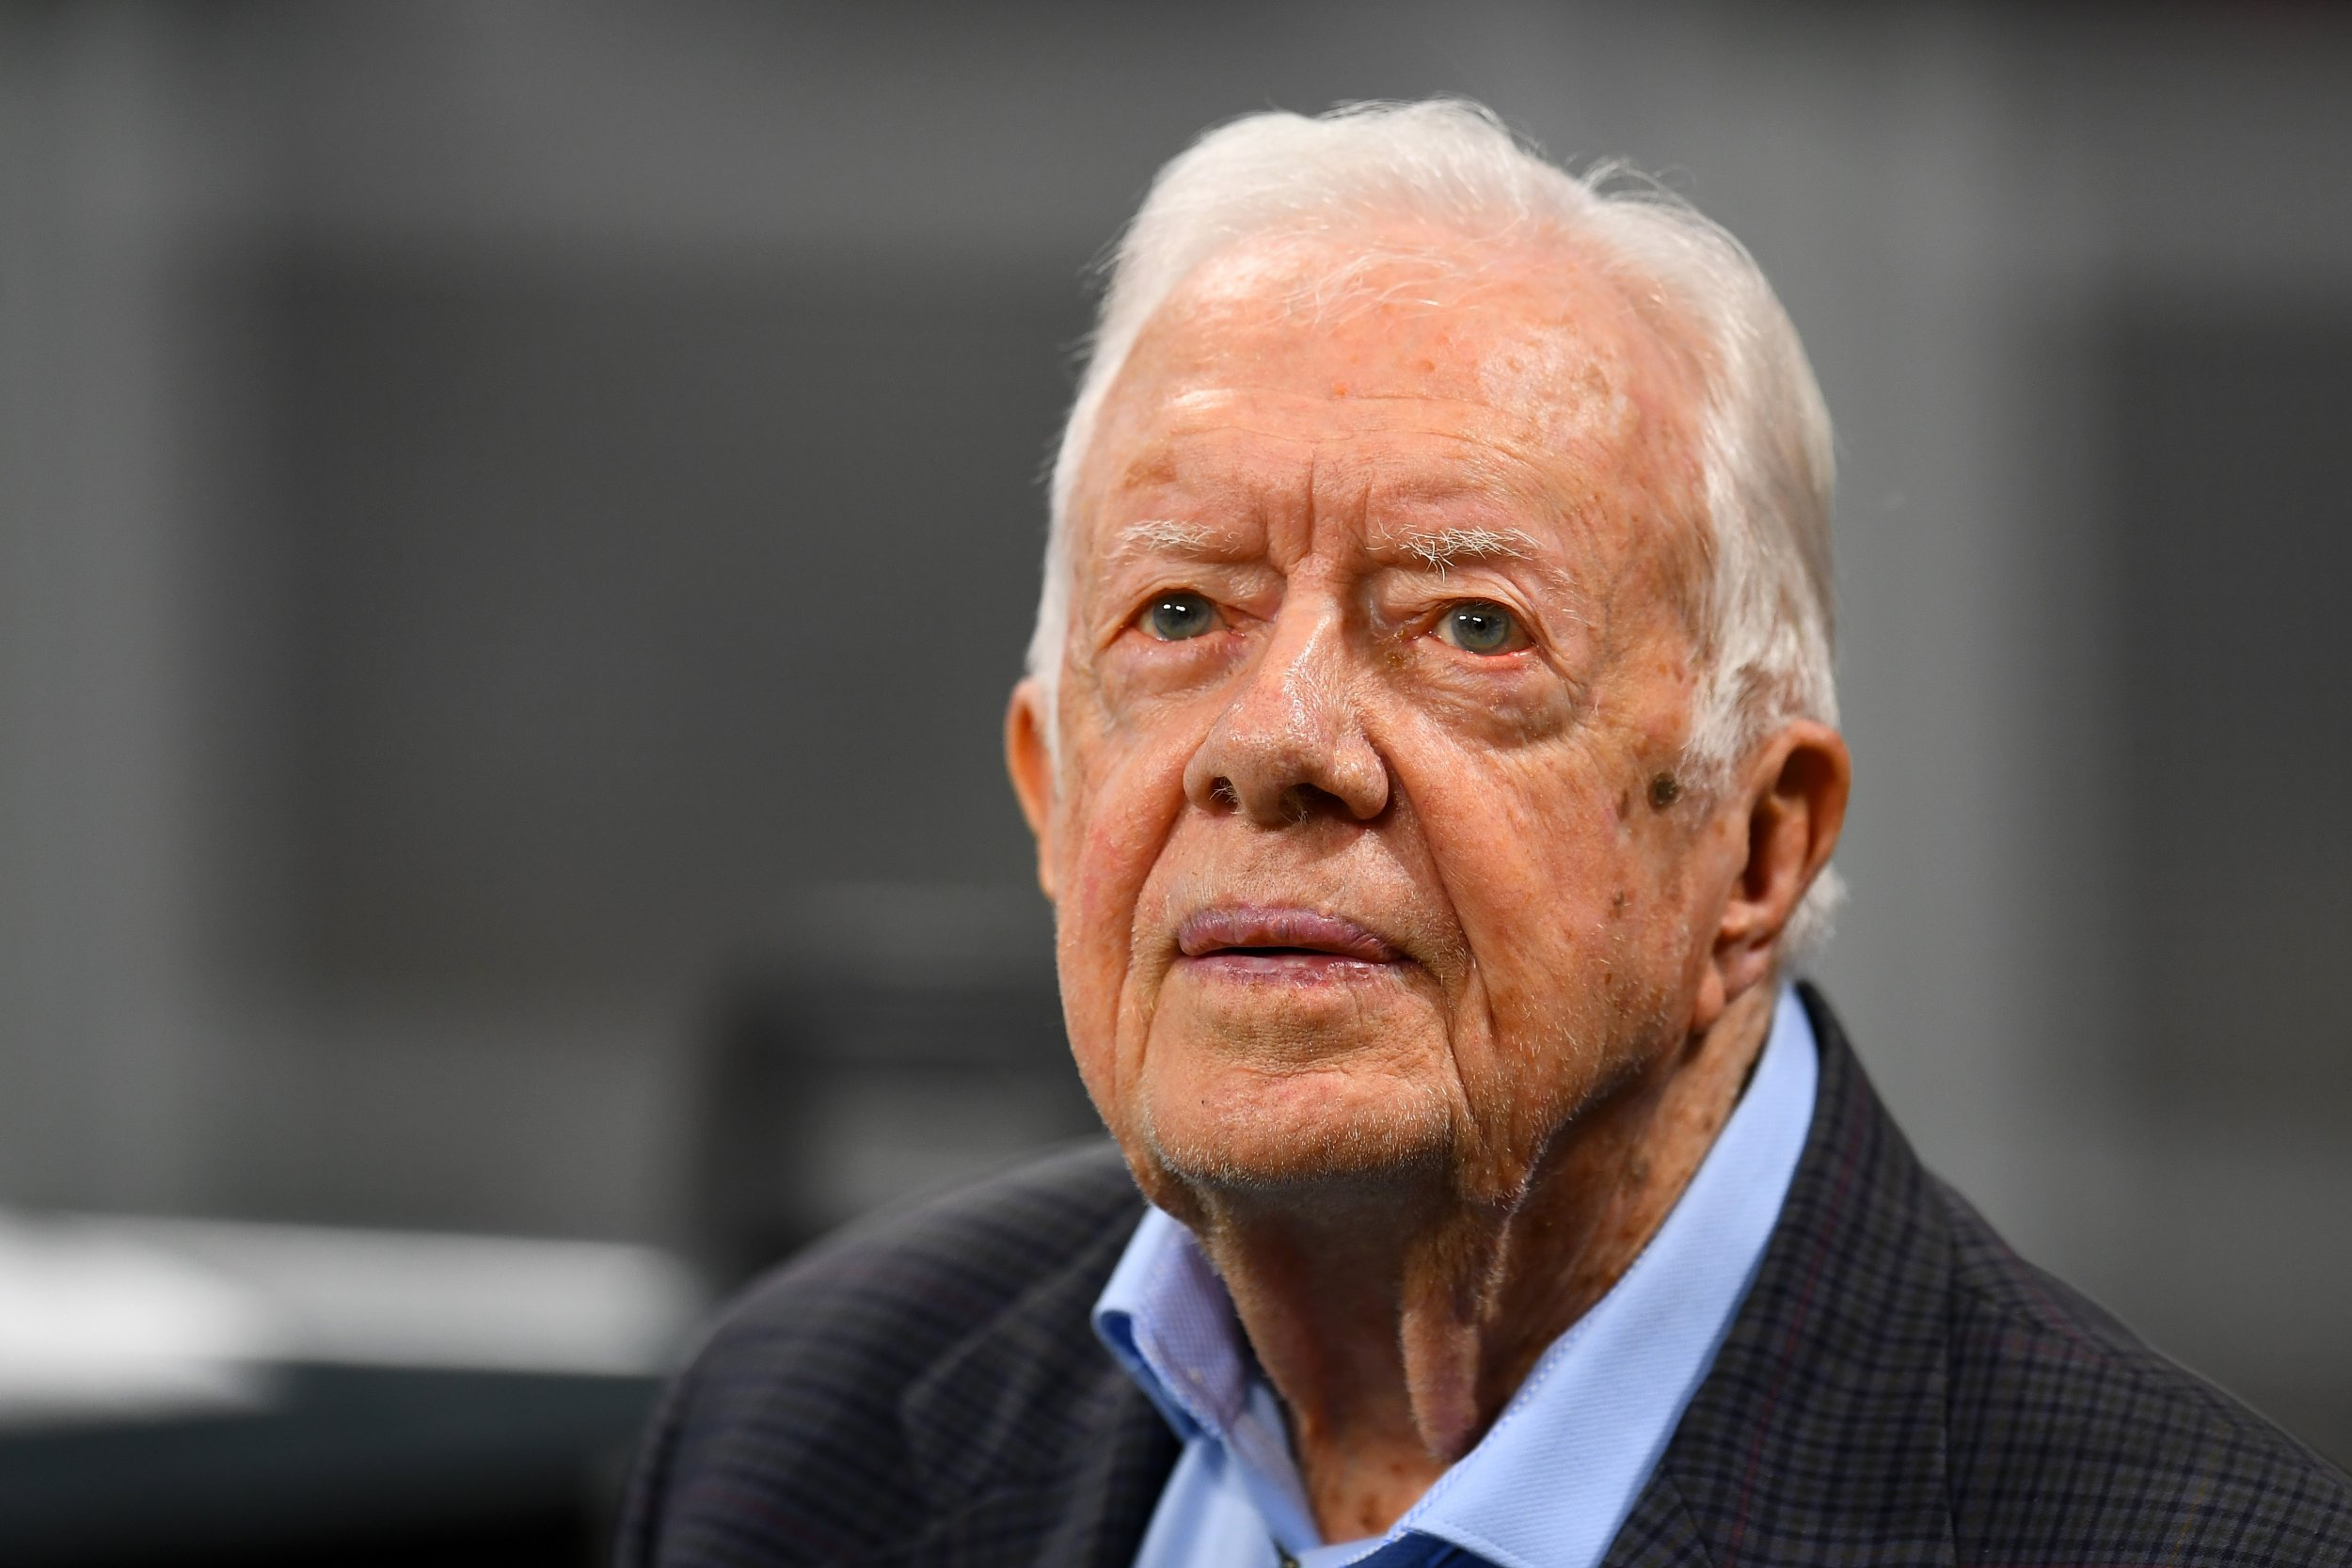 Jimmy Carter Georia governor election